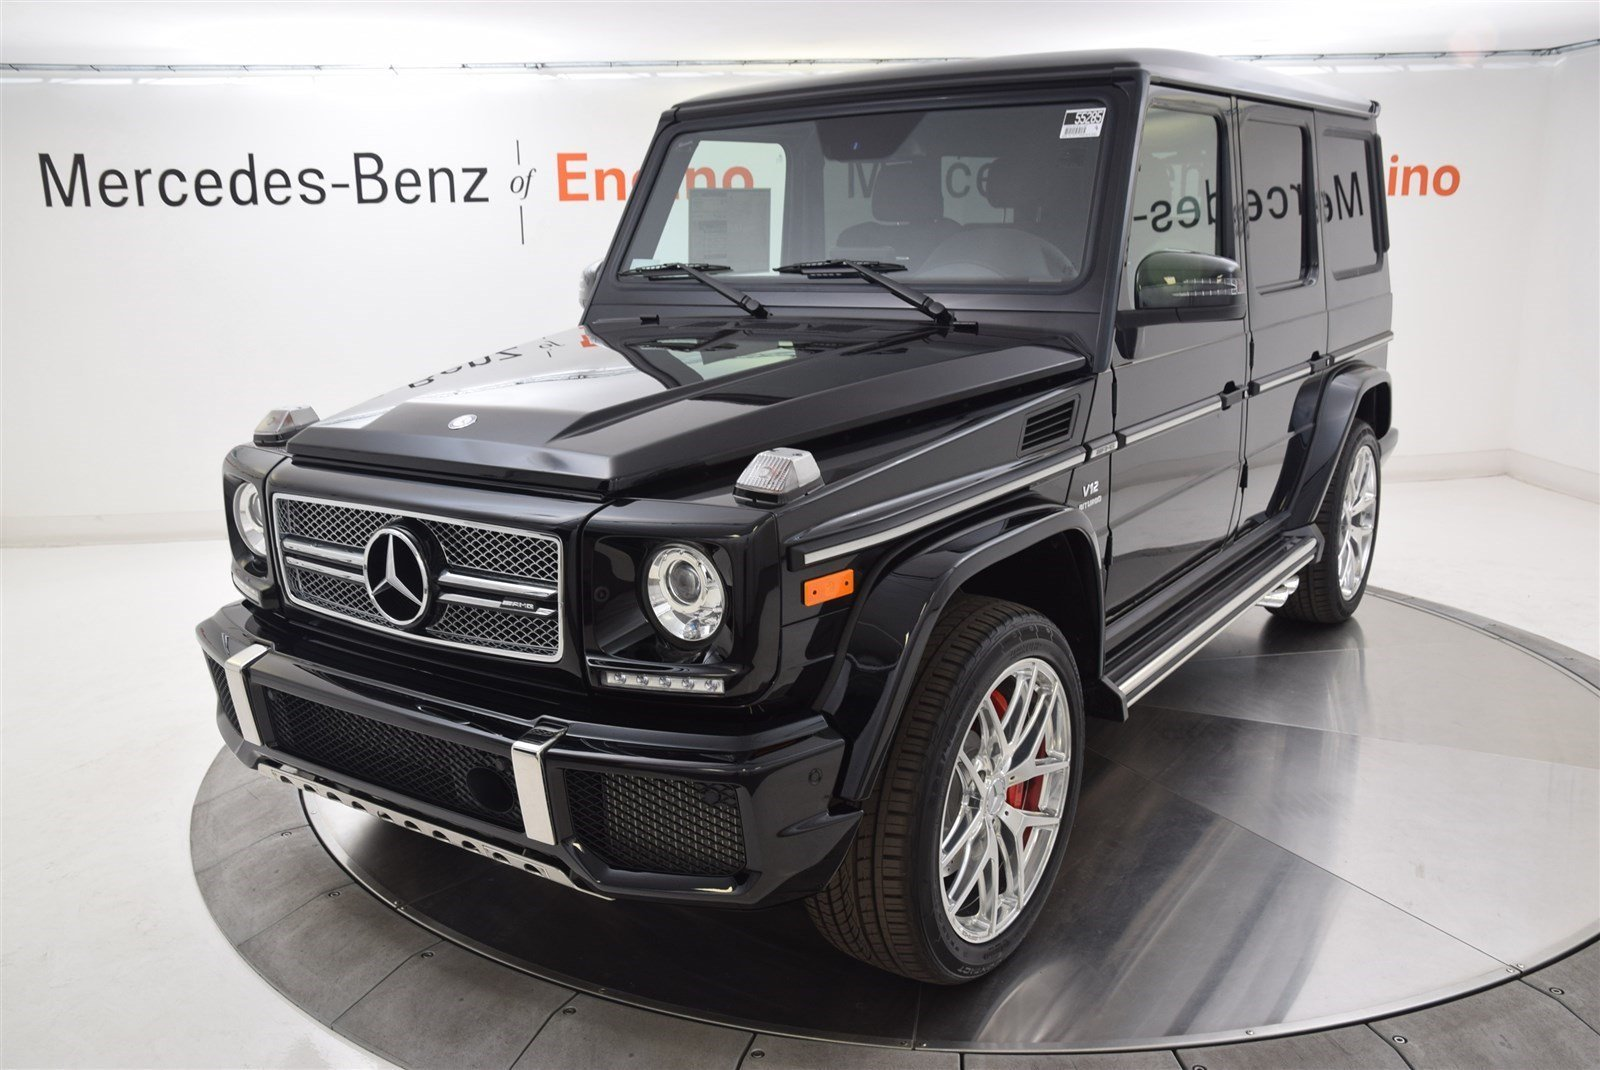 New 2017 mercedes benz g class amg g65 sport utility in for 2017 mercedes benz g class msrp